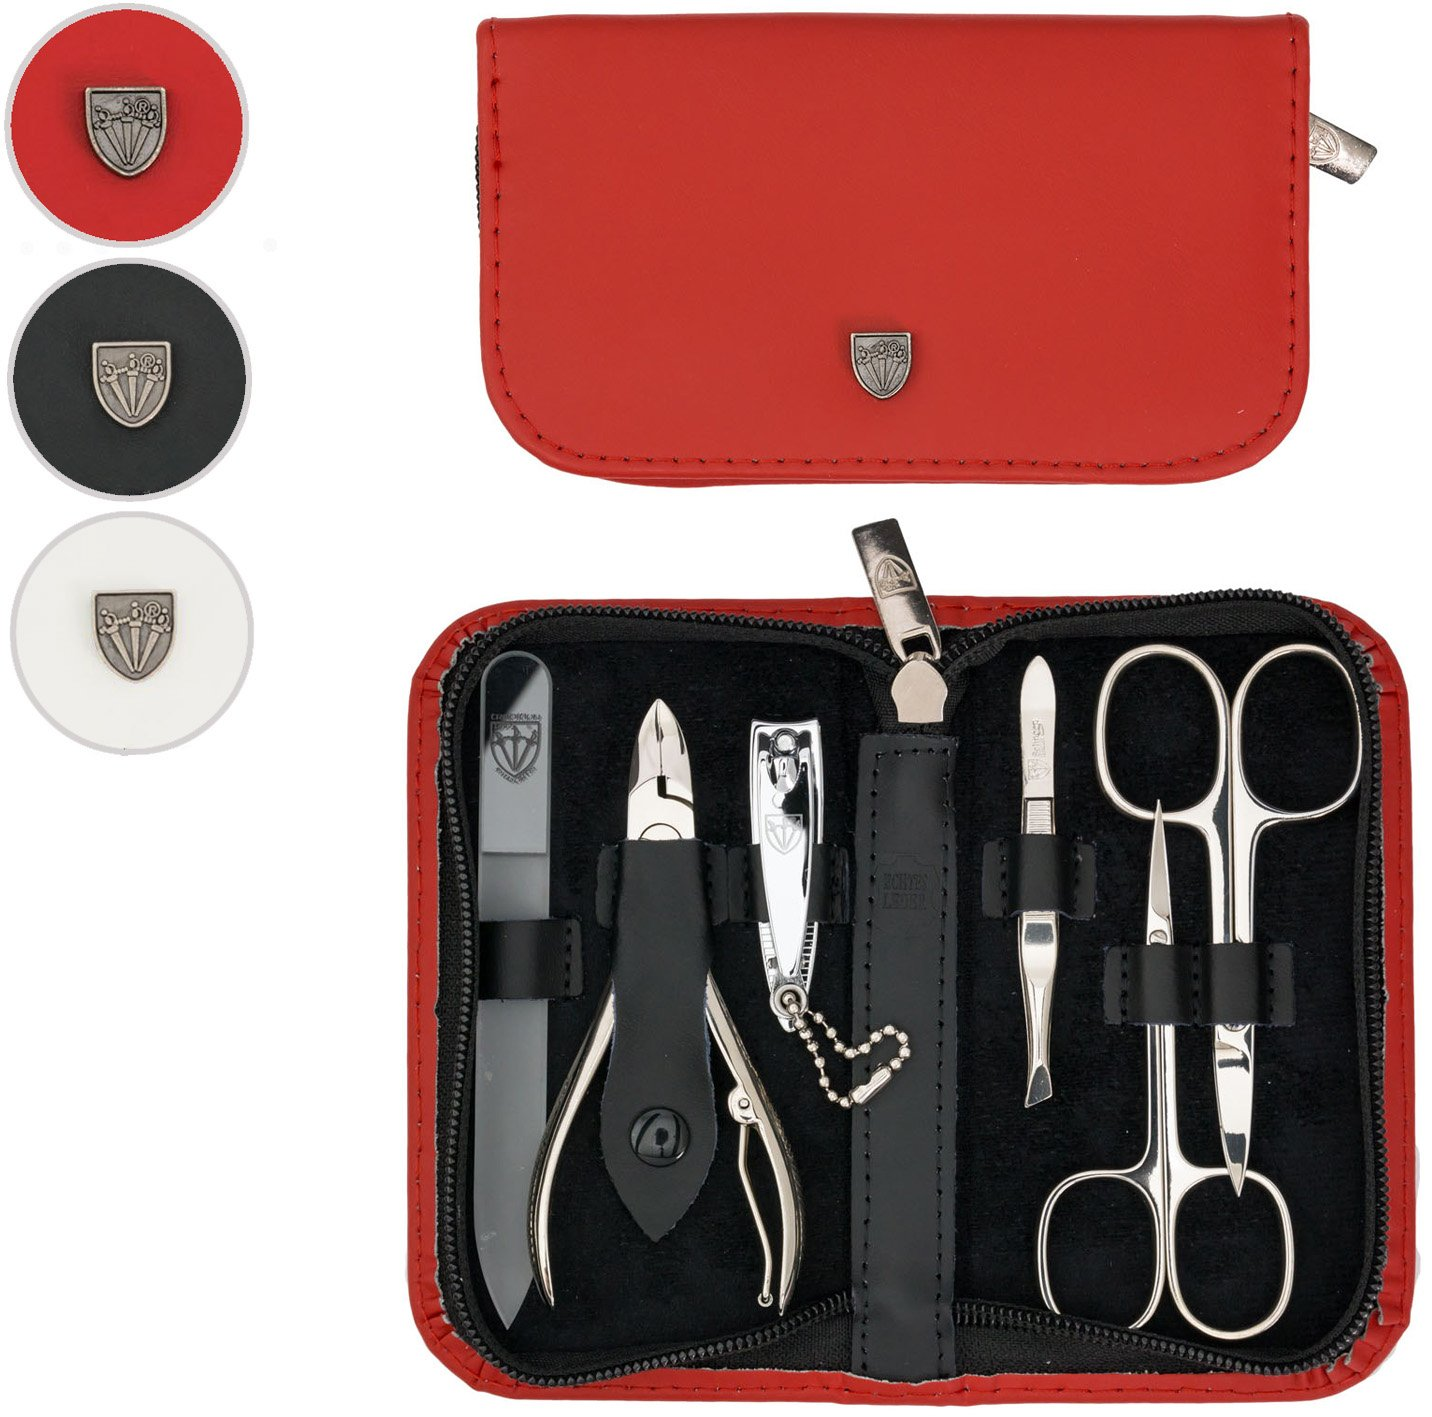 THREE SWORDS | Exclusive 6-Piece MANICURE - PEDICURE - GROOMING - NAIL CARE set / kit / case - GENUINE LEATHER | Made in Solingen / GERMANY (213709)